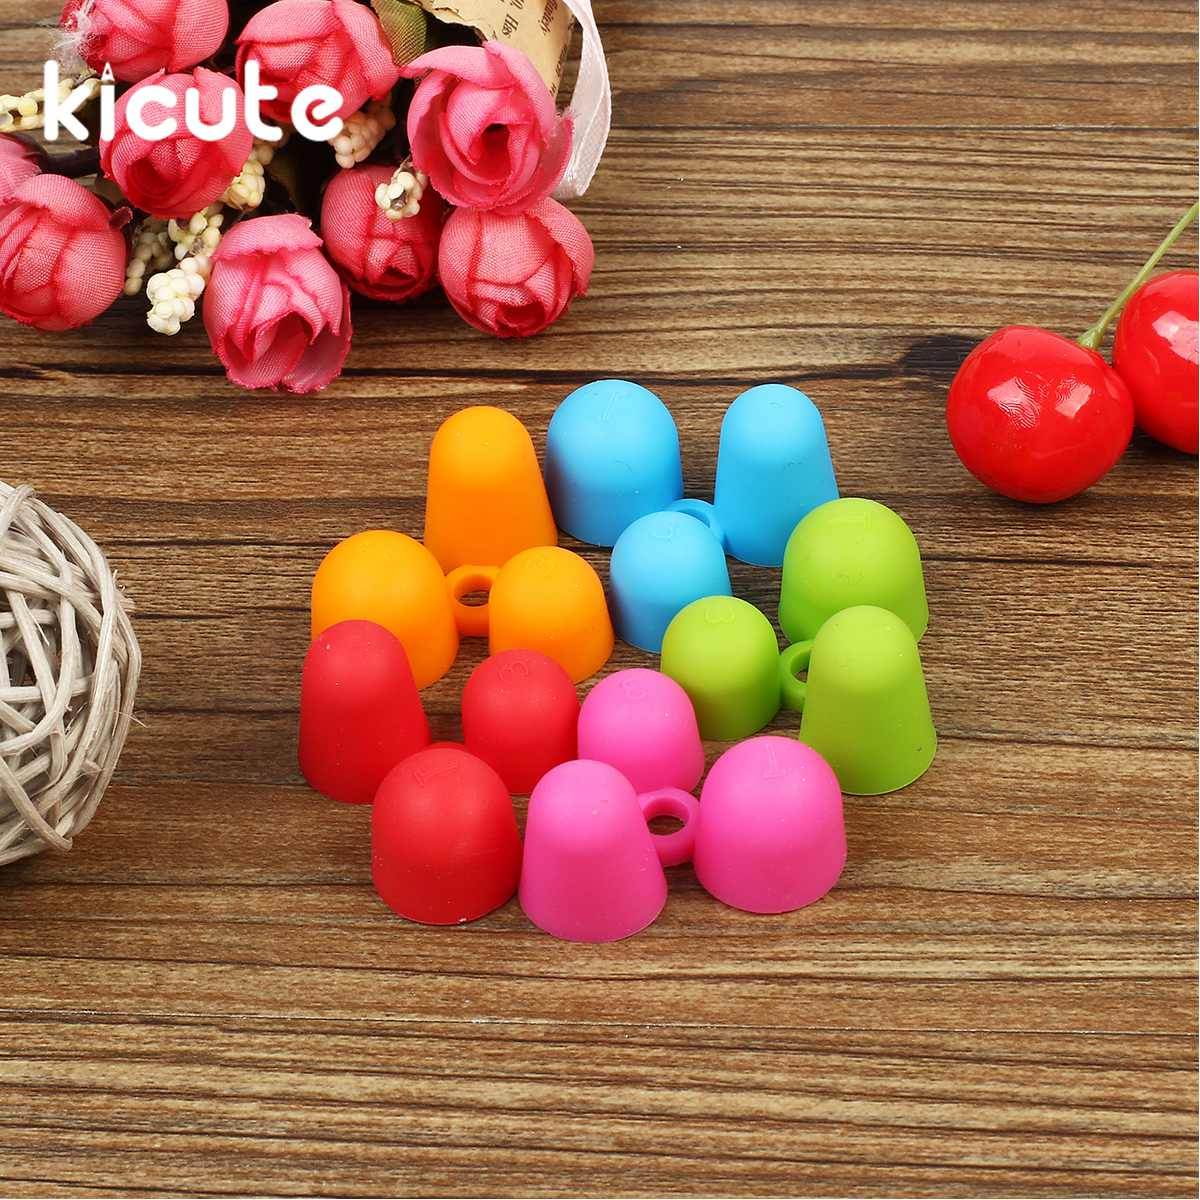 Kicute 5pcs/lot Pencil Grips Occupational Therapy Handwriting Aid Children School Stationery Pen Control Right Silicone Writing